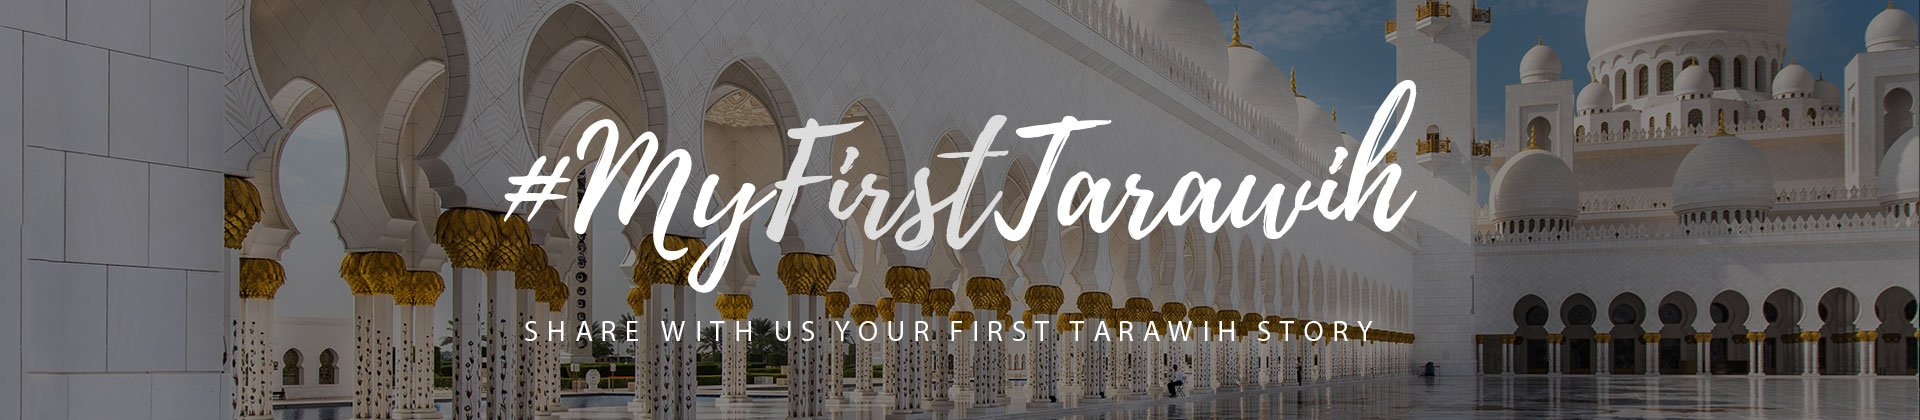 my-first-tarawih image